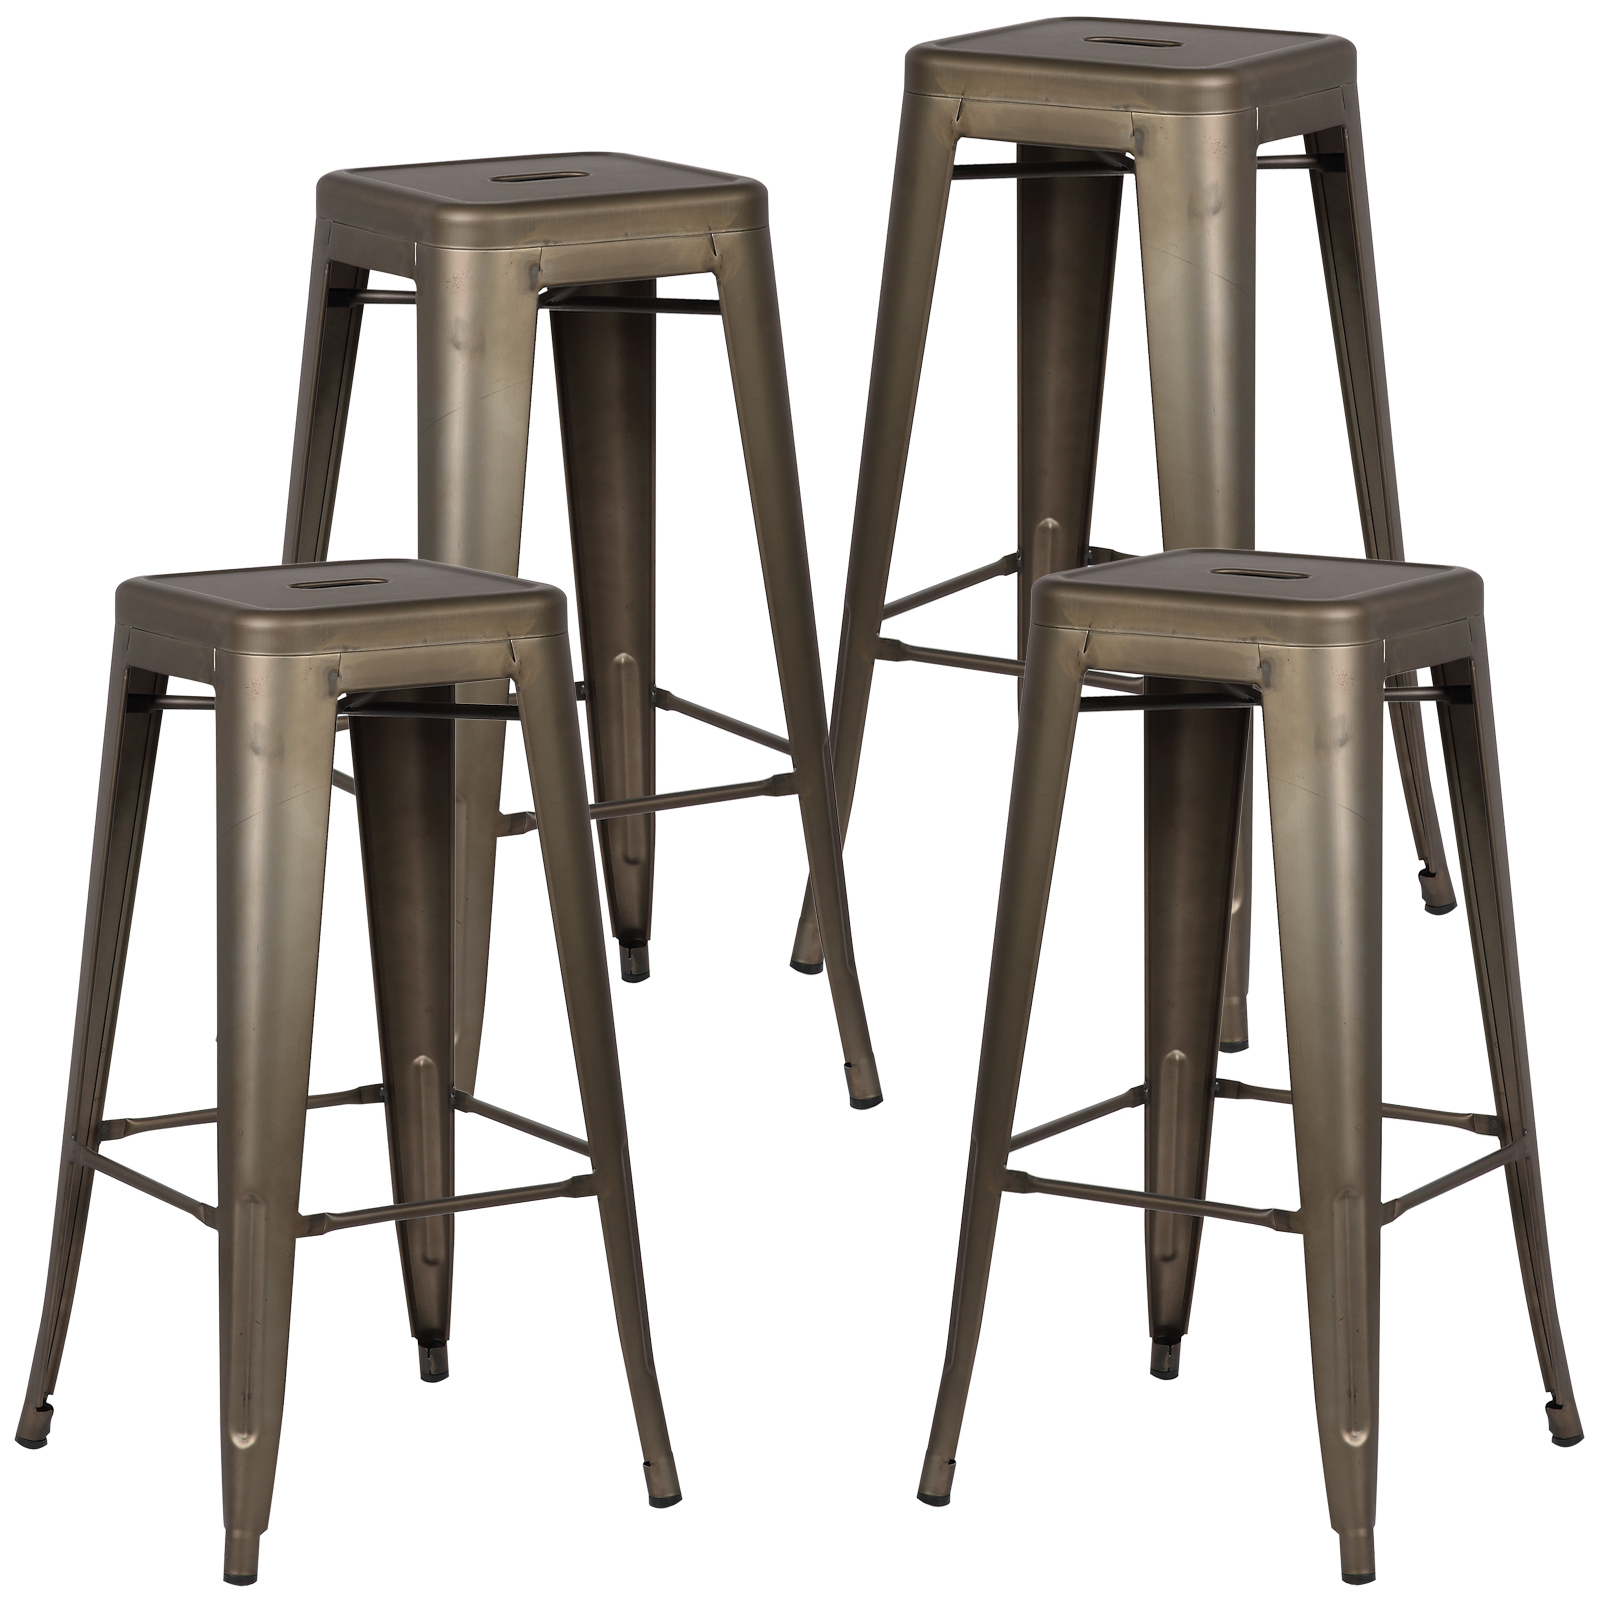 Poly and Bark Trattoria Bar Stool in Bronze (Set of 4)